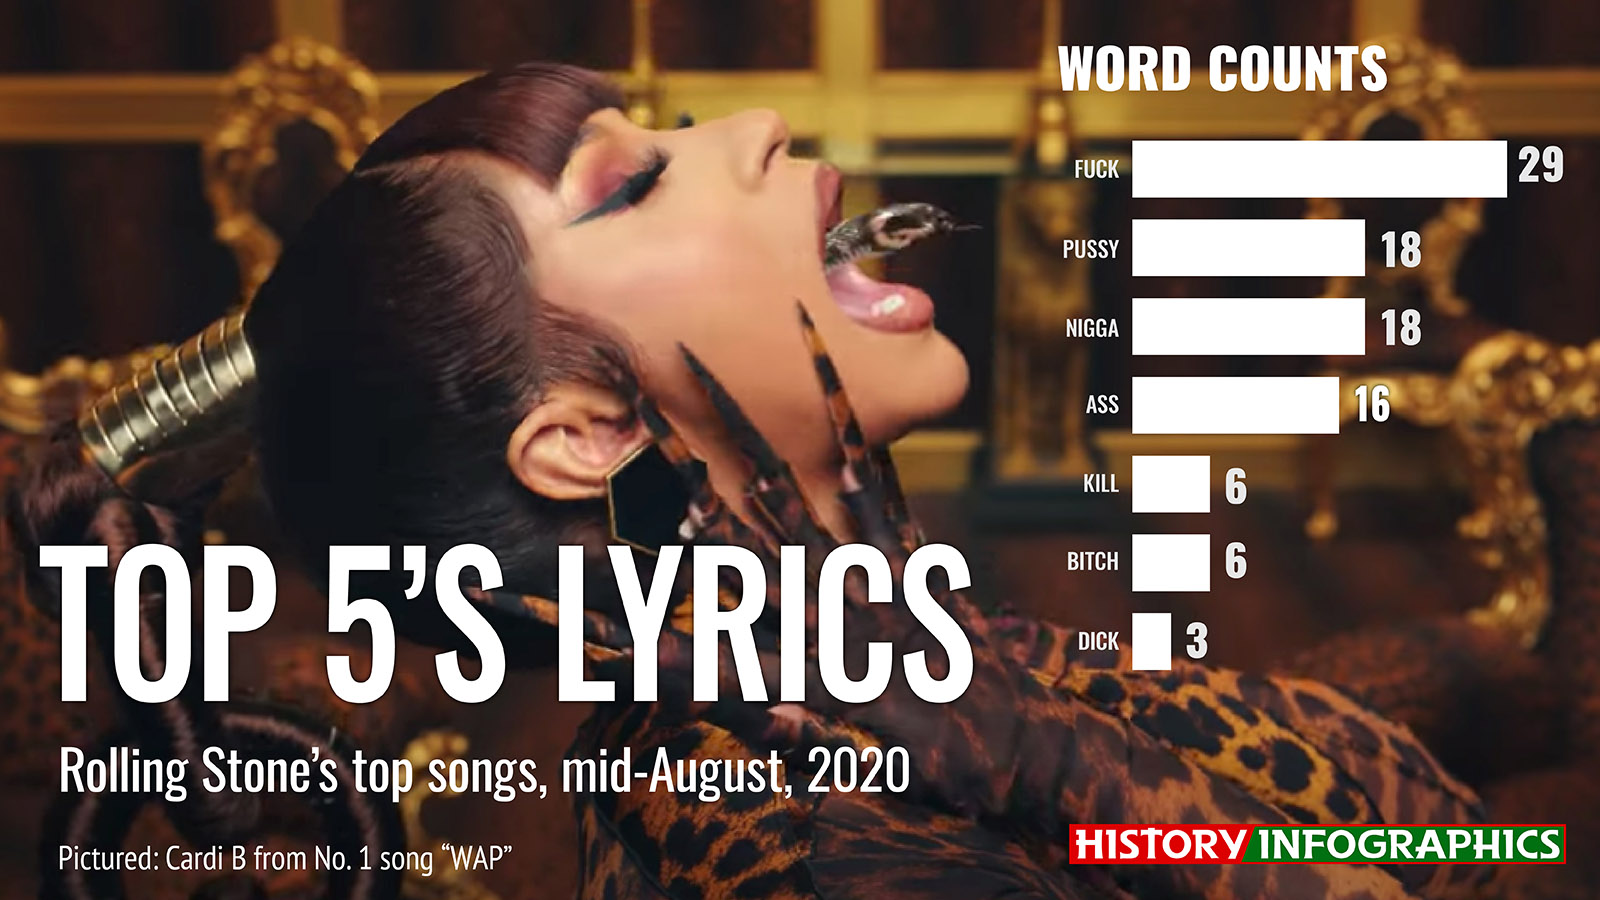 Lyrics from Rolling Stone's top five songs of mid-August 2020, featuring WAP.